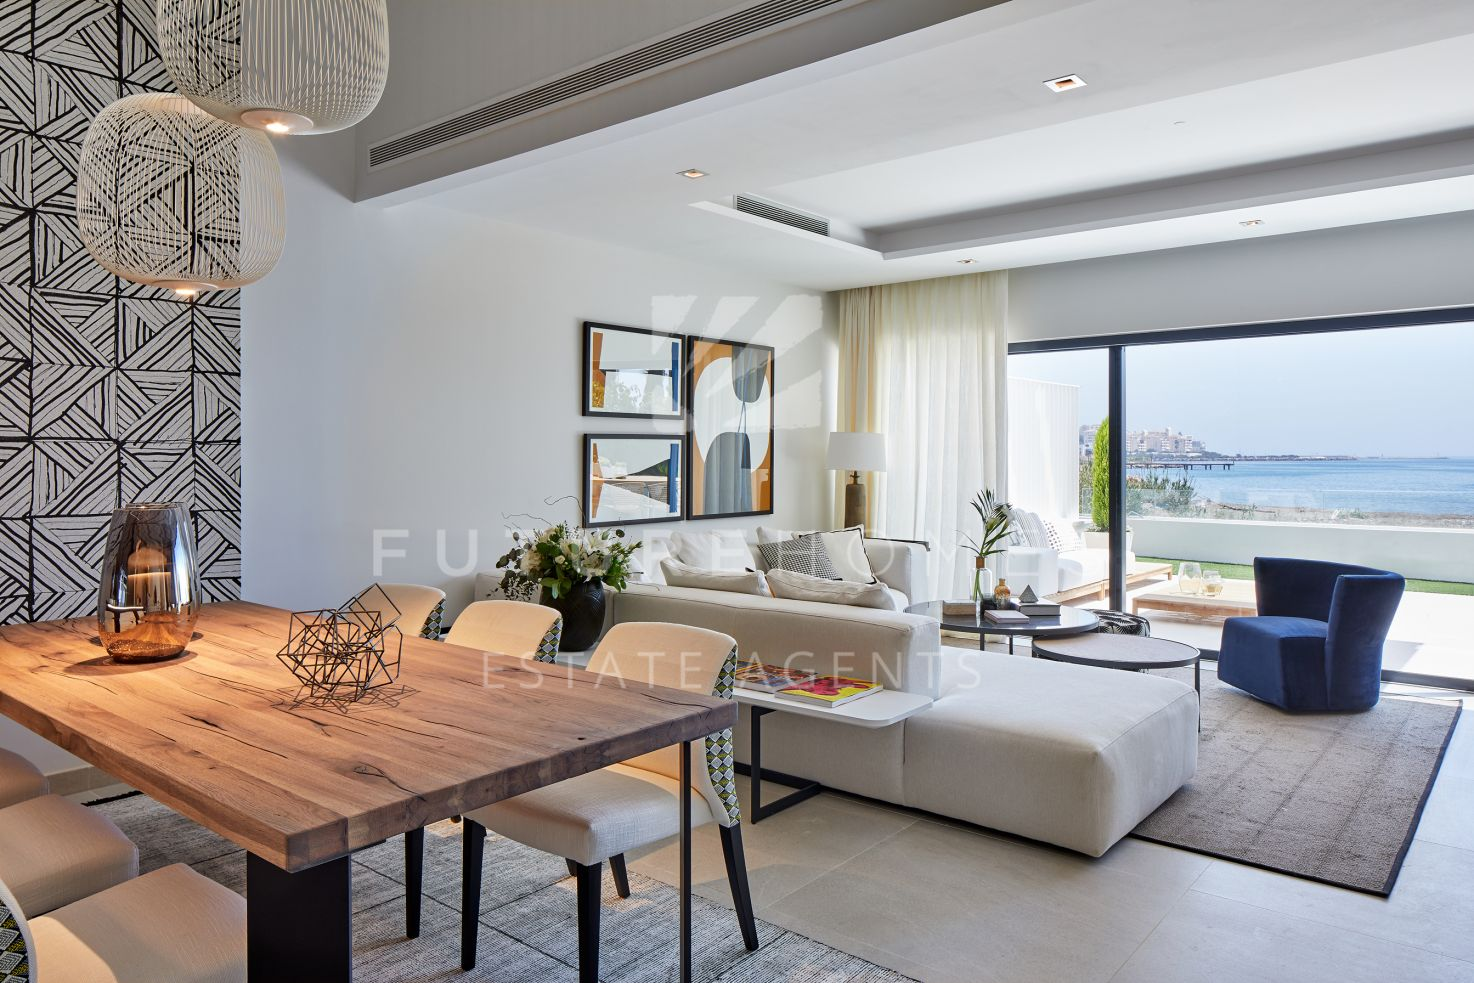 Exclusive frontline beach townhouses in West Estepona